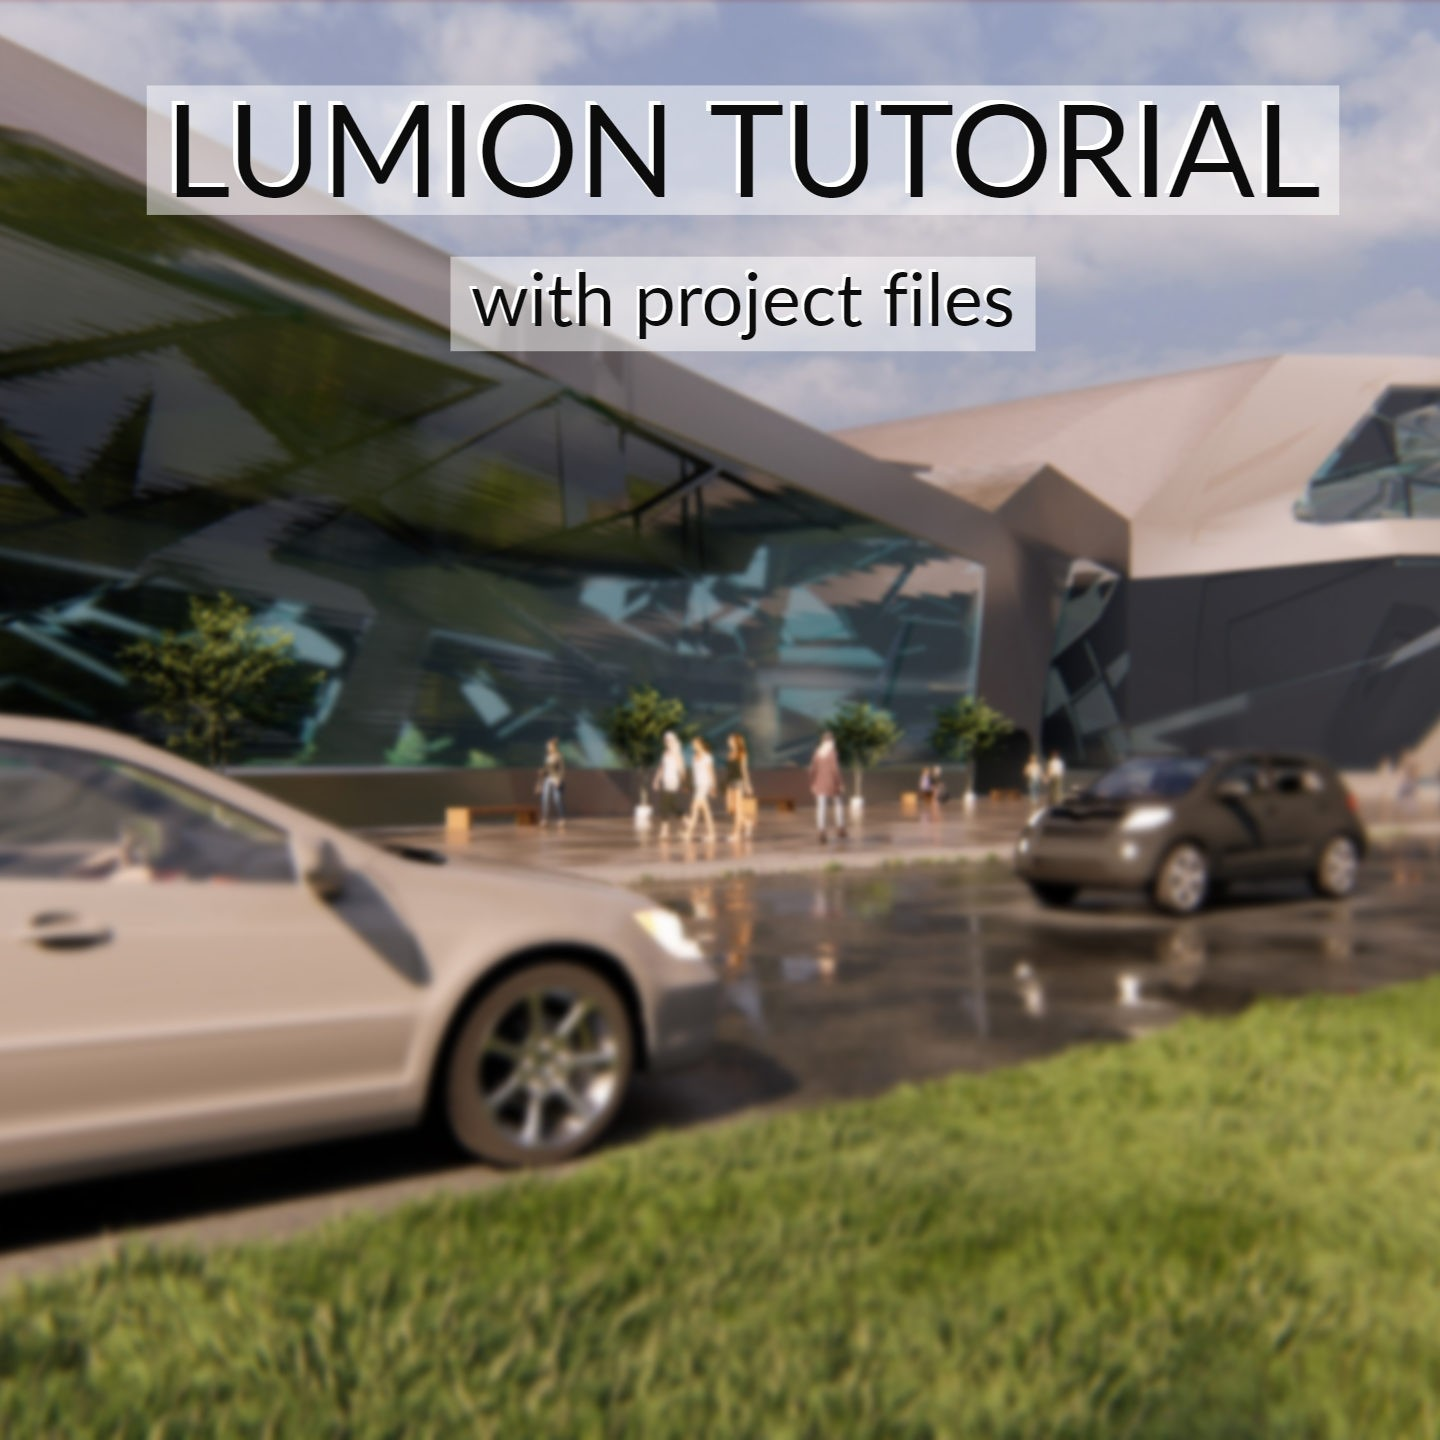 Lumion Exterior Tutorial 6 lumion|lumion files|lumion scenes|lumion tutorial